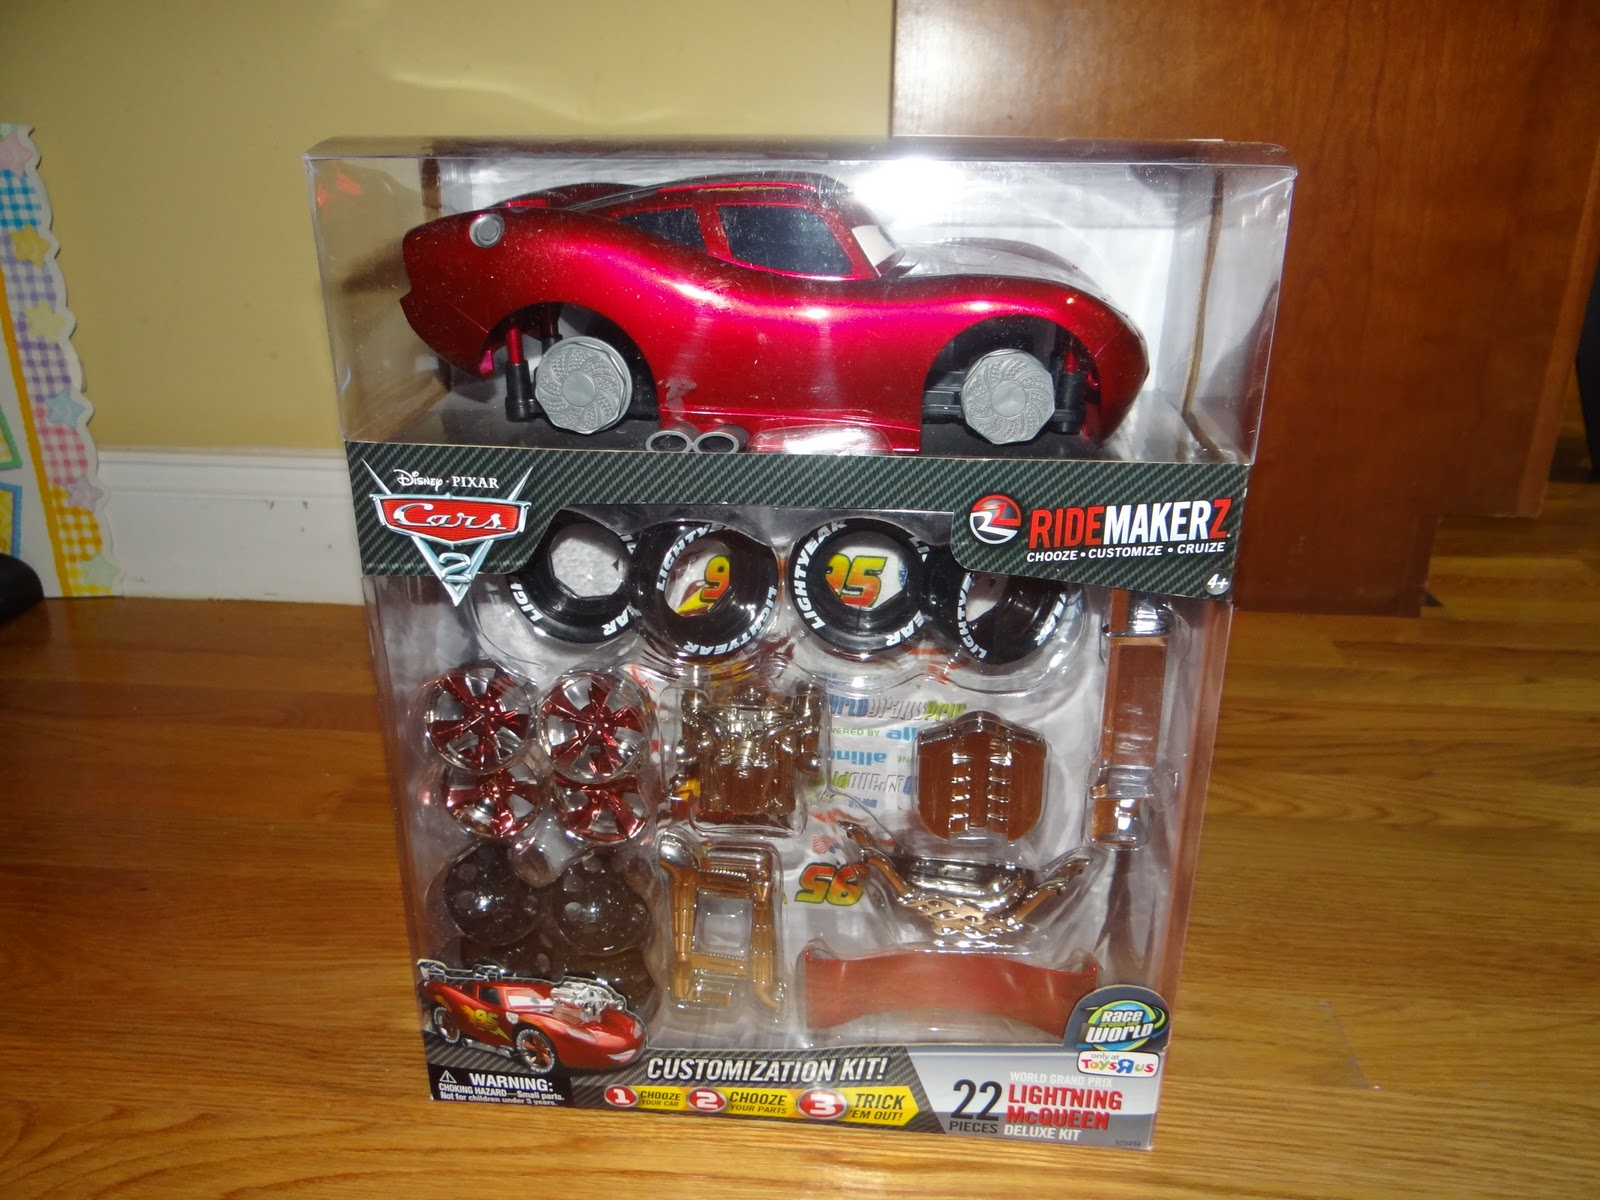 Disney Pixar Cars 2 Ridemarkerz Make your own car Review and